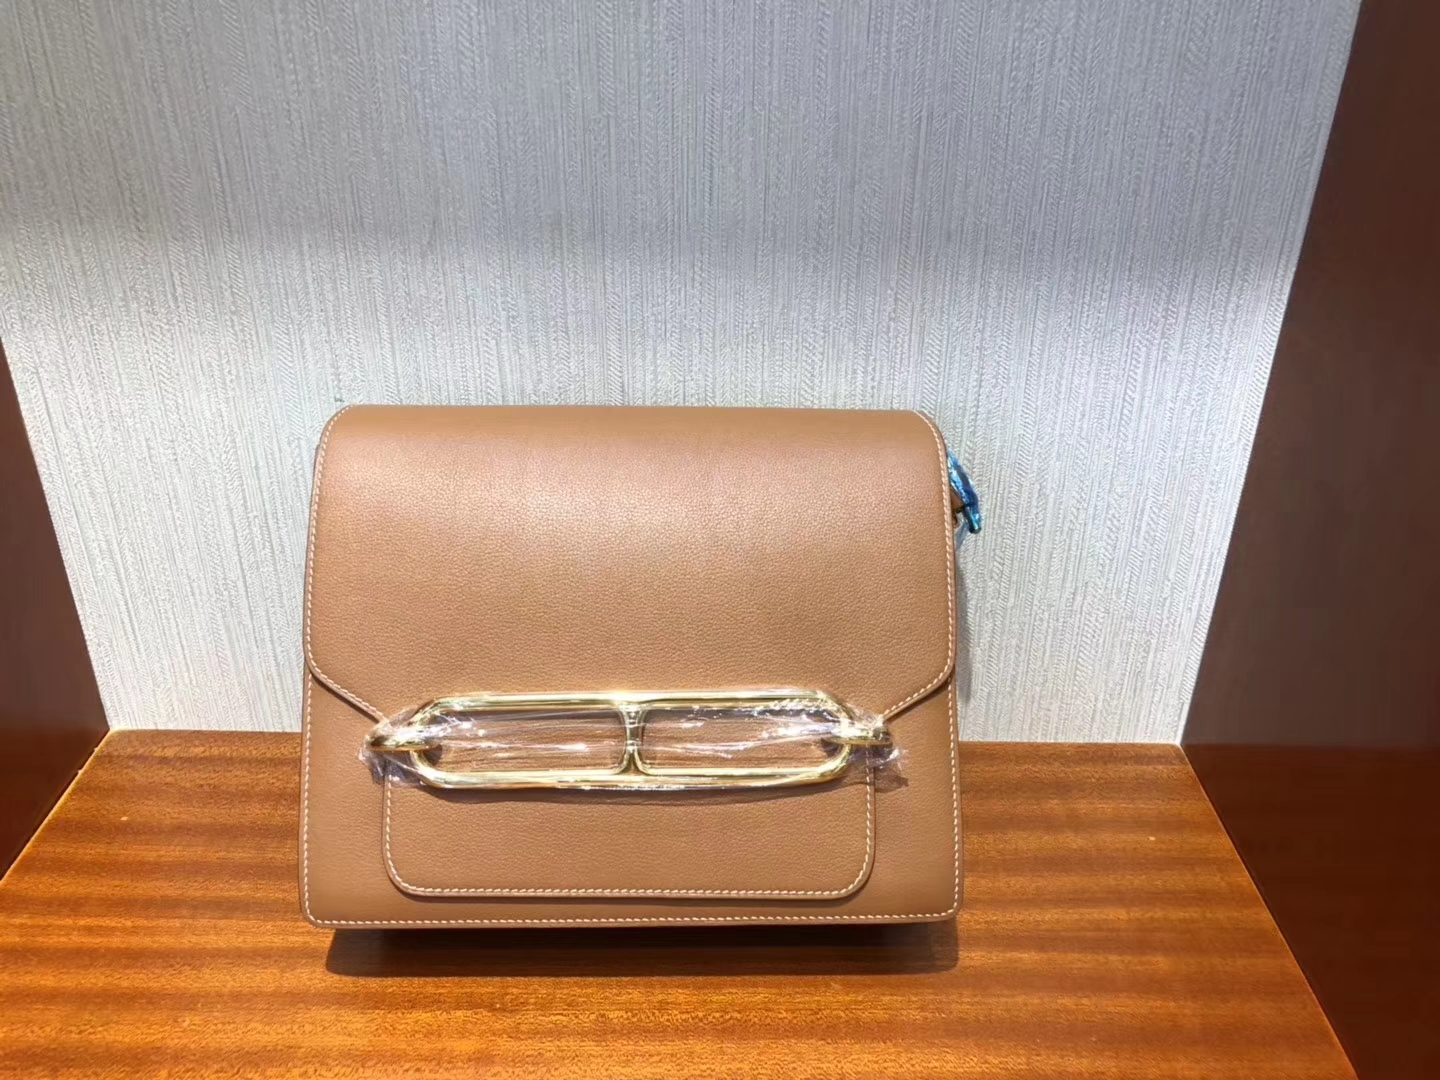 Sale Hermes CK37 Gold Evecolor Leather Roulis Bag24CM Gold Hardware